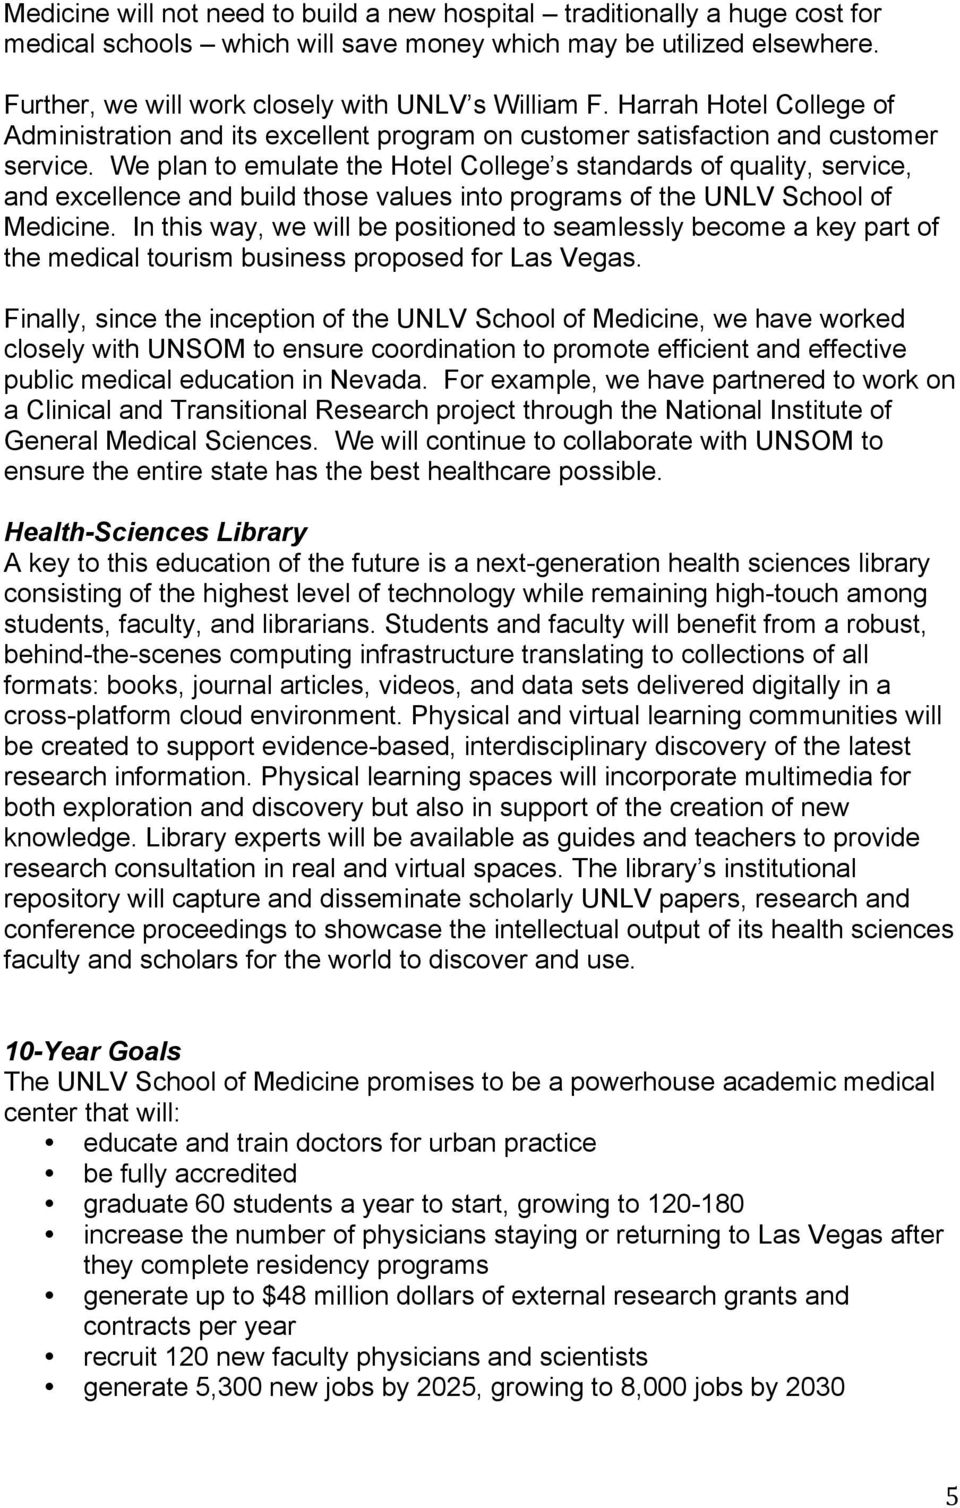 We plan to emulate the Hotel College s standards of quality, service, and excellence and build those values into programs of the UNLV School of Medicine.